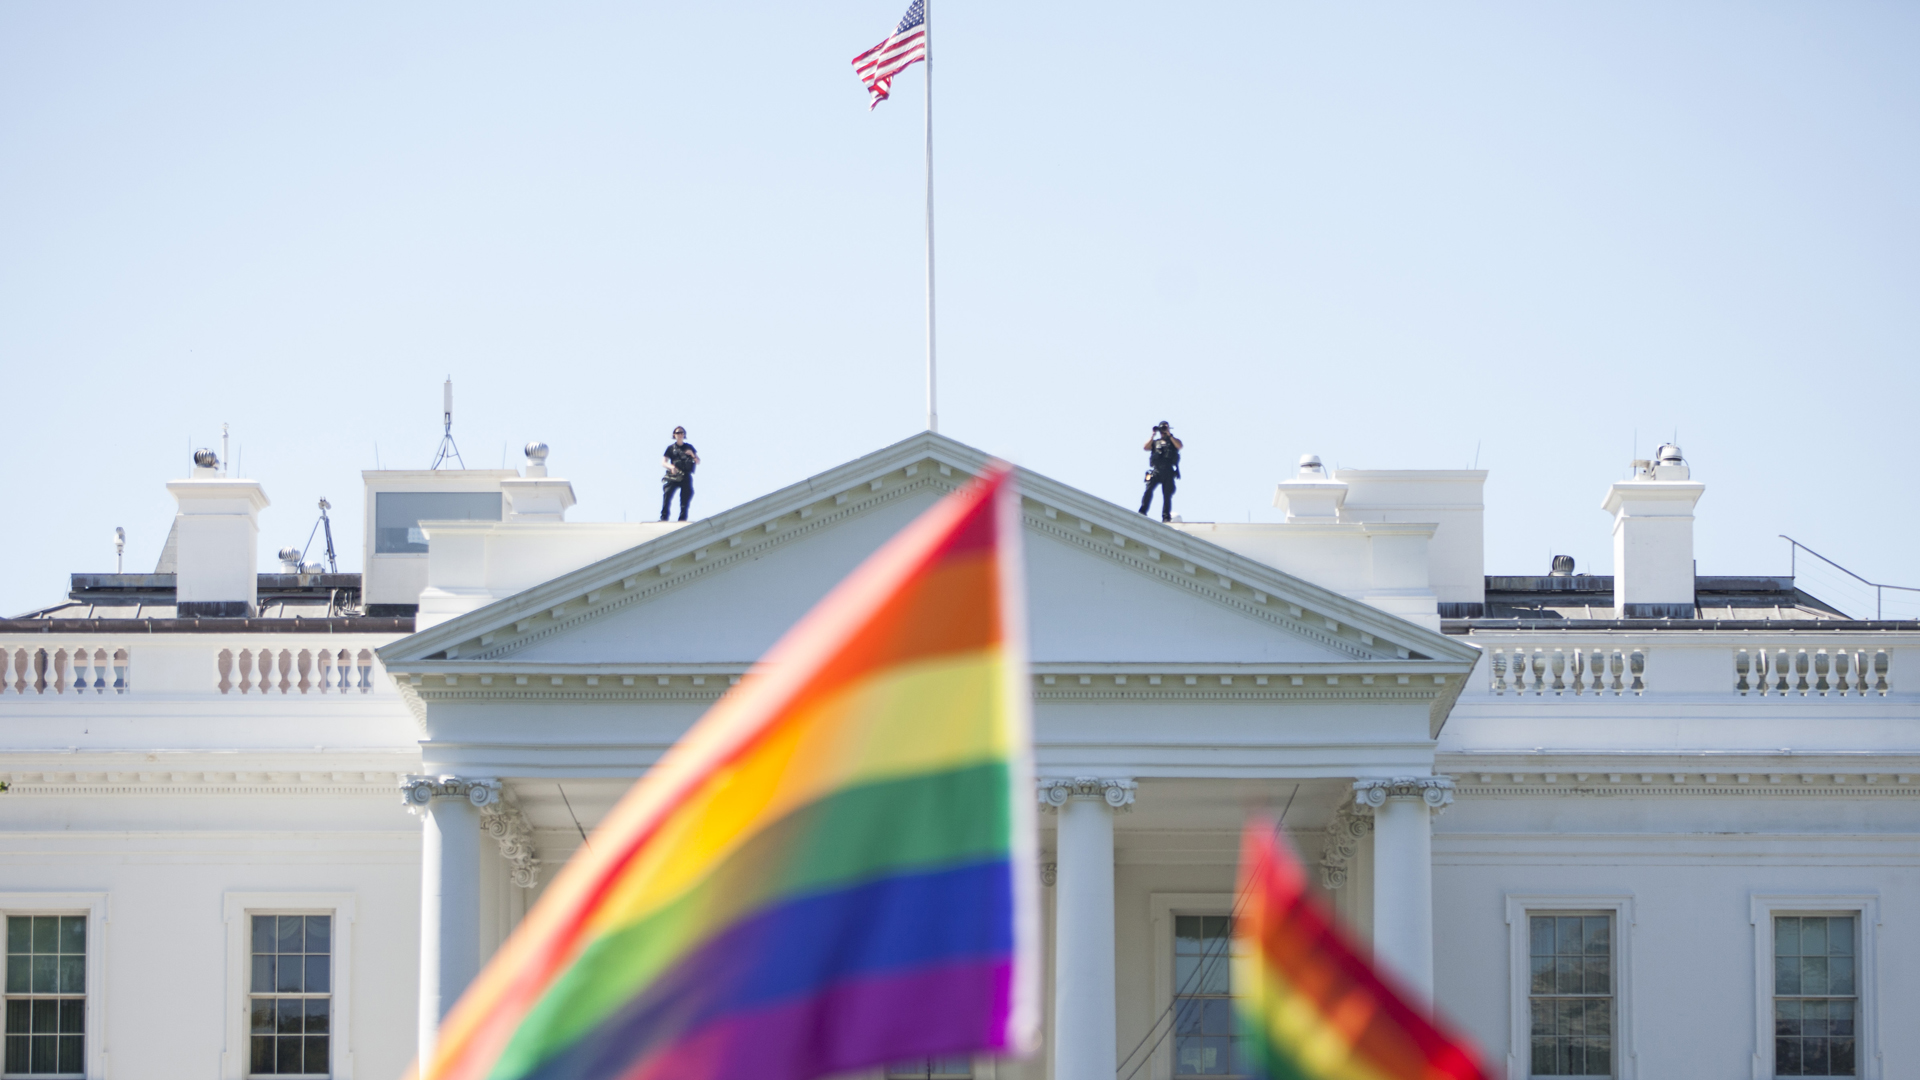 Demonstrators carry rainbow flags past the White House during the Equality March for Unity and Peace on June 11, 2017. in Washington, D.C. (Credit: Zach Gibson/Getty Images)